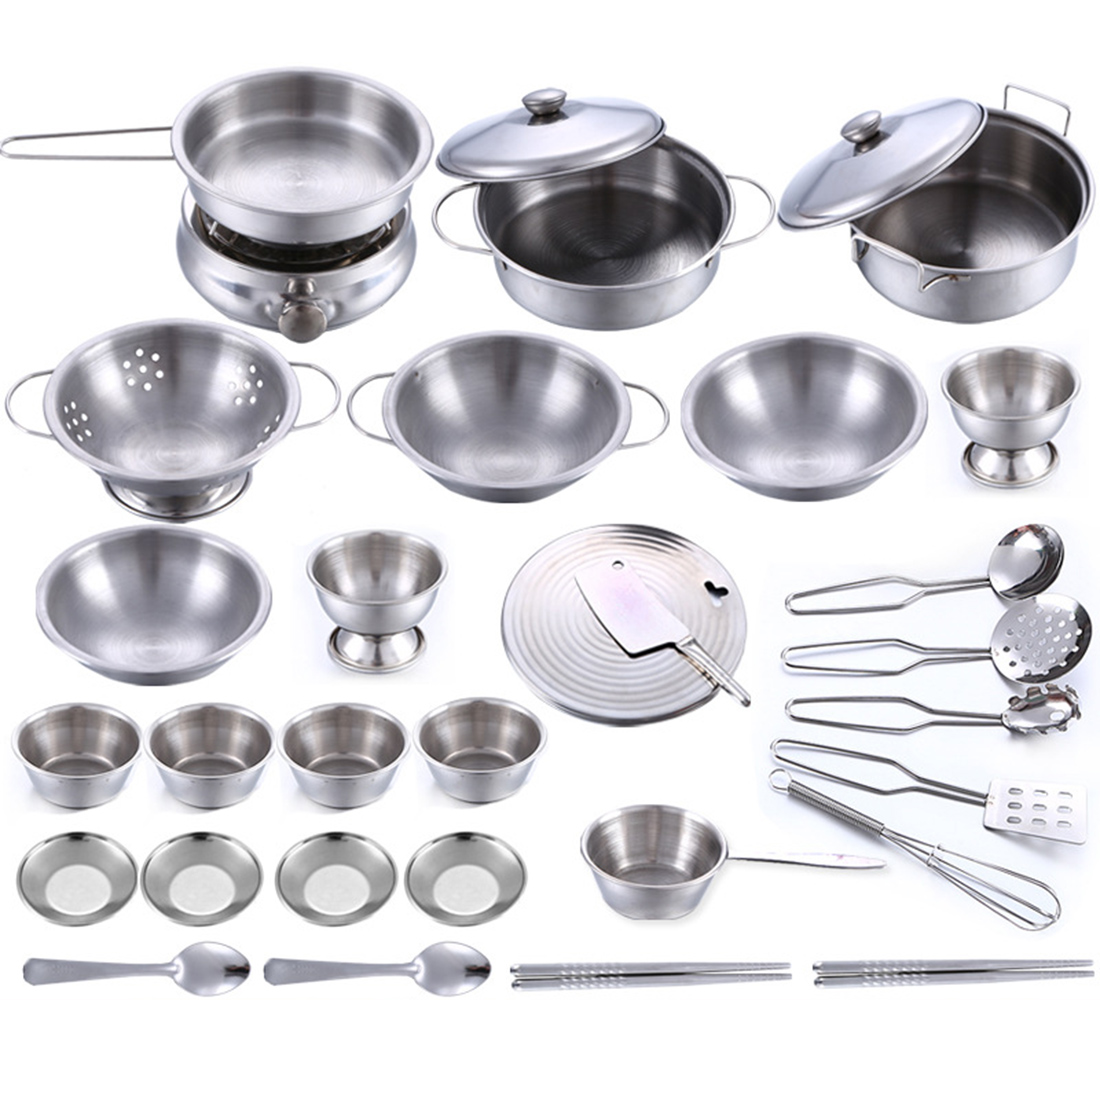 16/25/32Pcs Stainless Steel Children Kitchen Toys Miniature Cooking Set Simulation Tableware Toy Pretend Cook Toy for Kids Gift16/25/32Pcs Stainless Steel Children Kitchen Toys Miniature Cooking Set Simulation Tableware Toy Pretend Cook Toy for Kids Gift